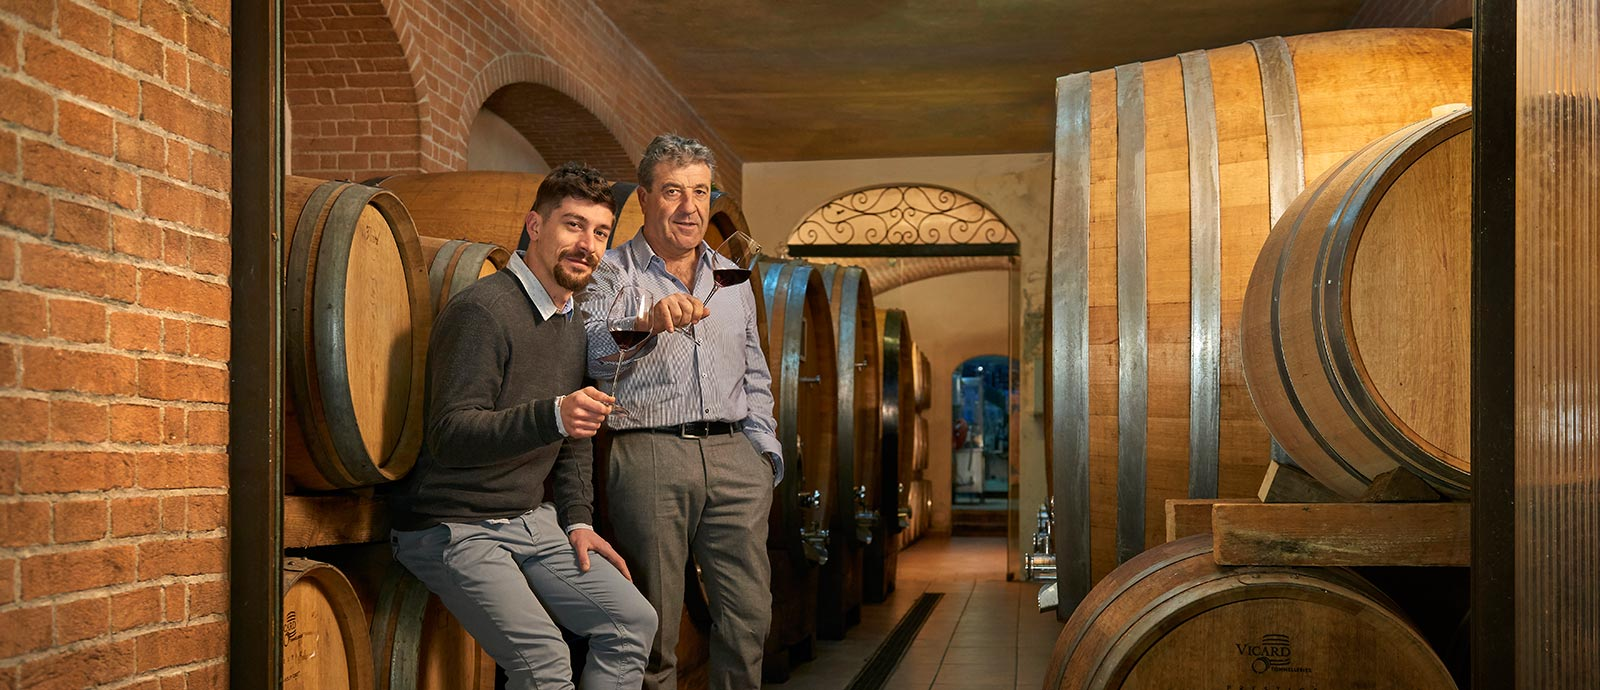 Winery and sale of Roero wines - Cascina Ca' Rossa - Canale d'Alba (CN)